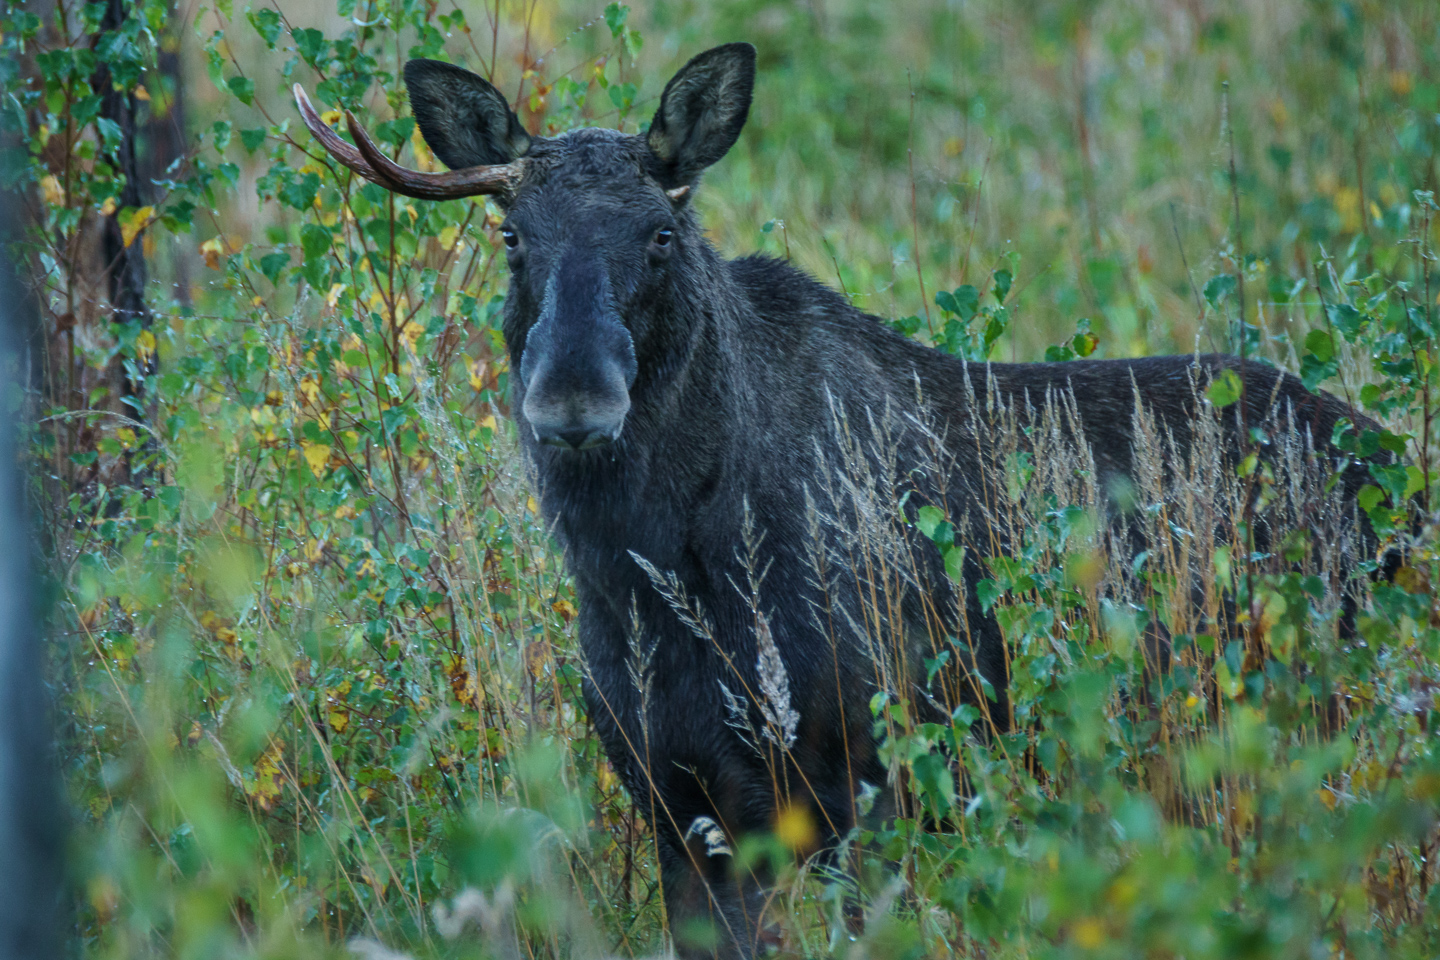 Onehorned moose